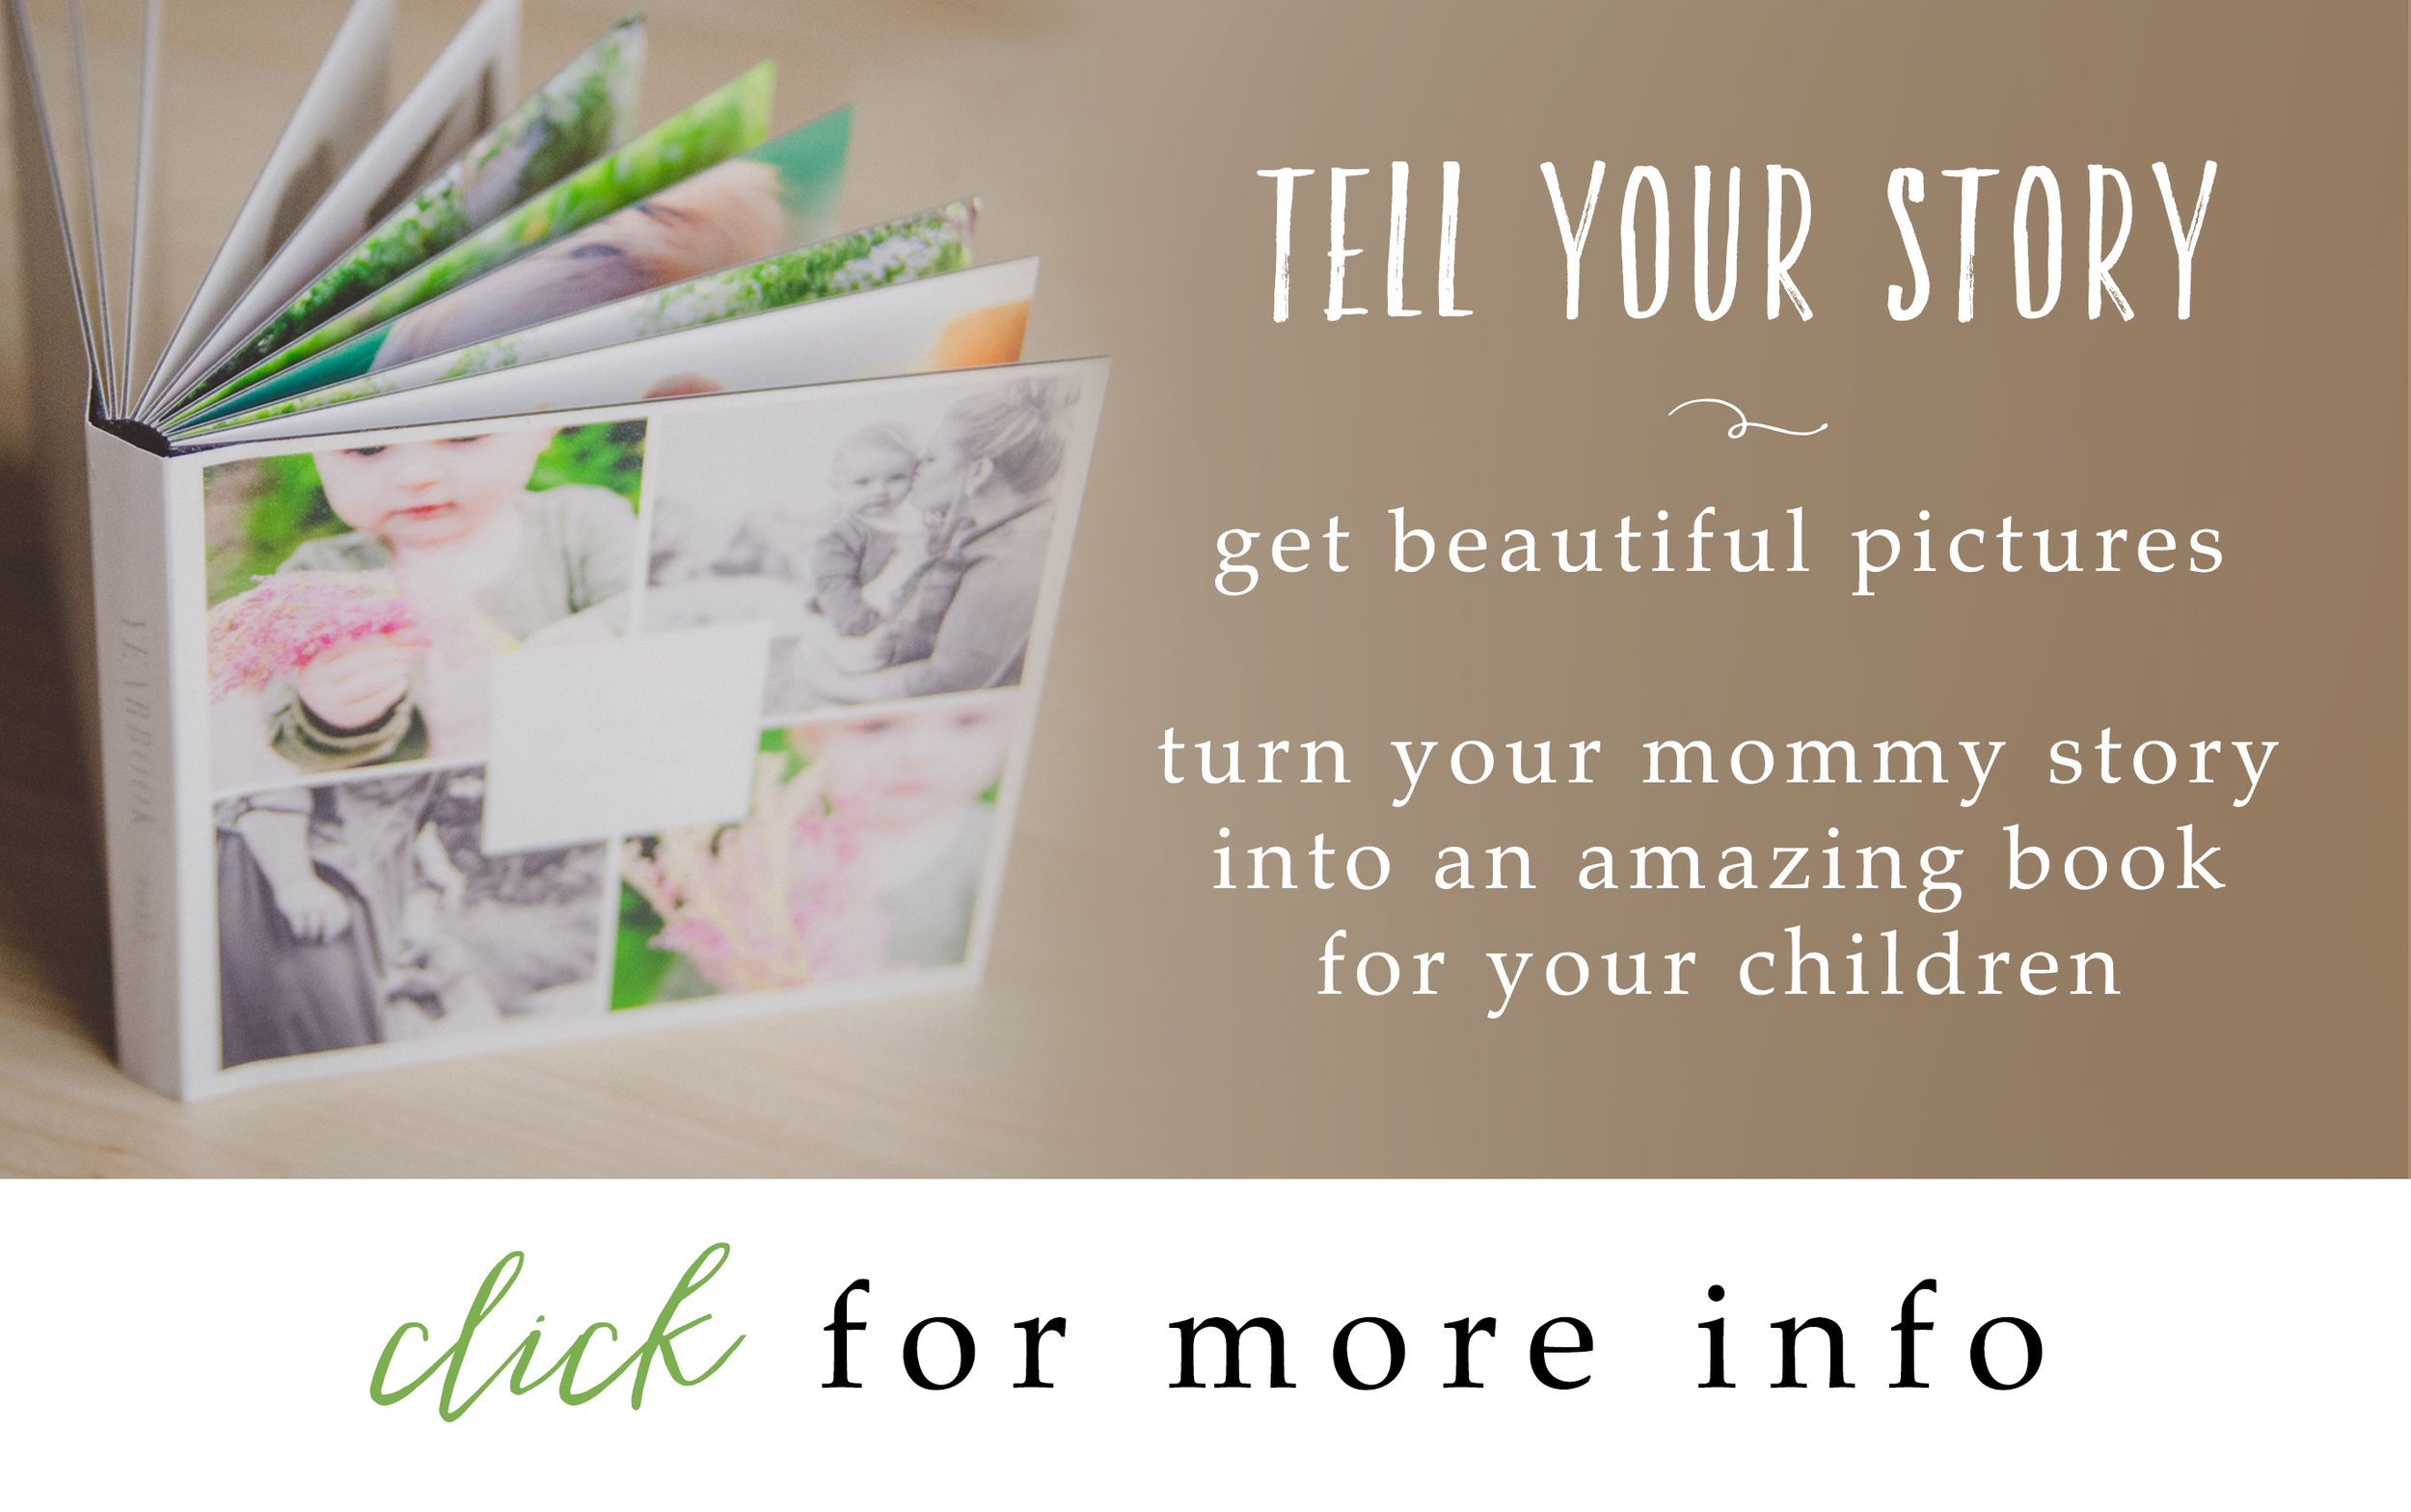 tell your story project motherhood footer.jpg